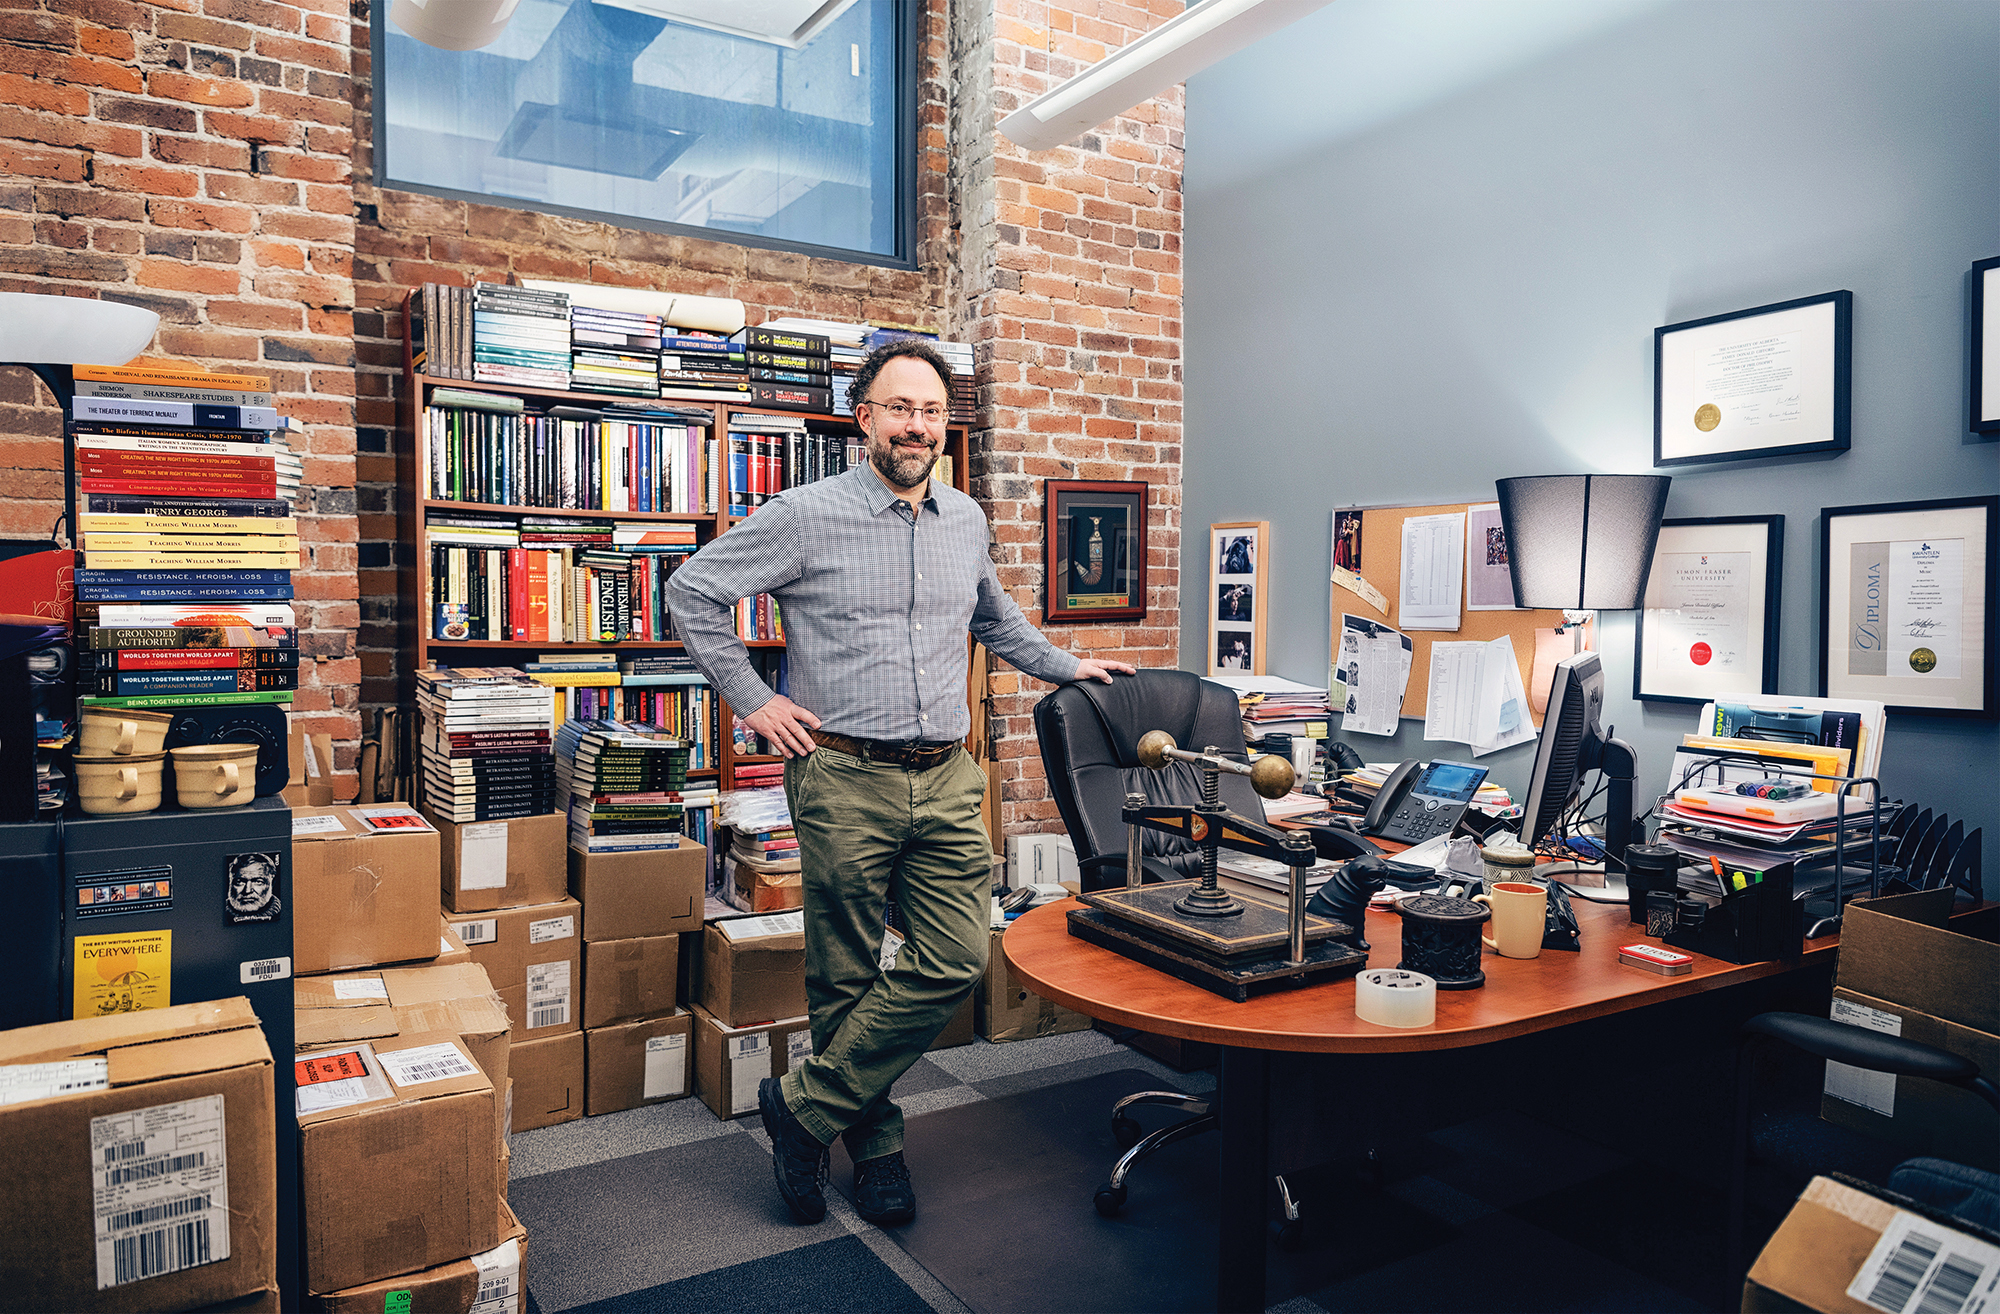 A male professor stands in his cluttered office.